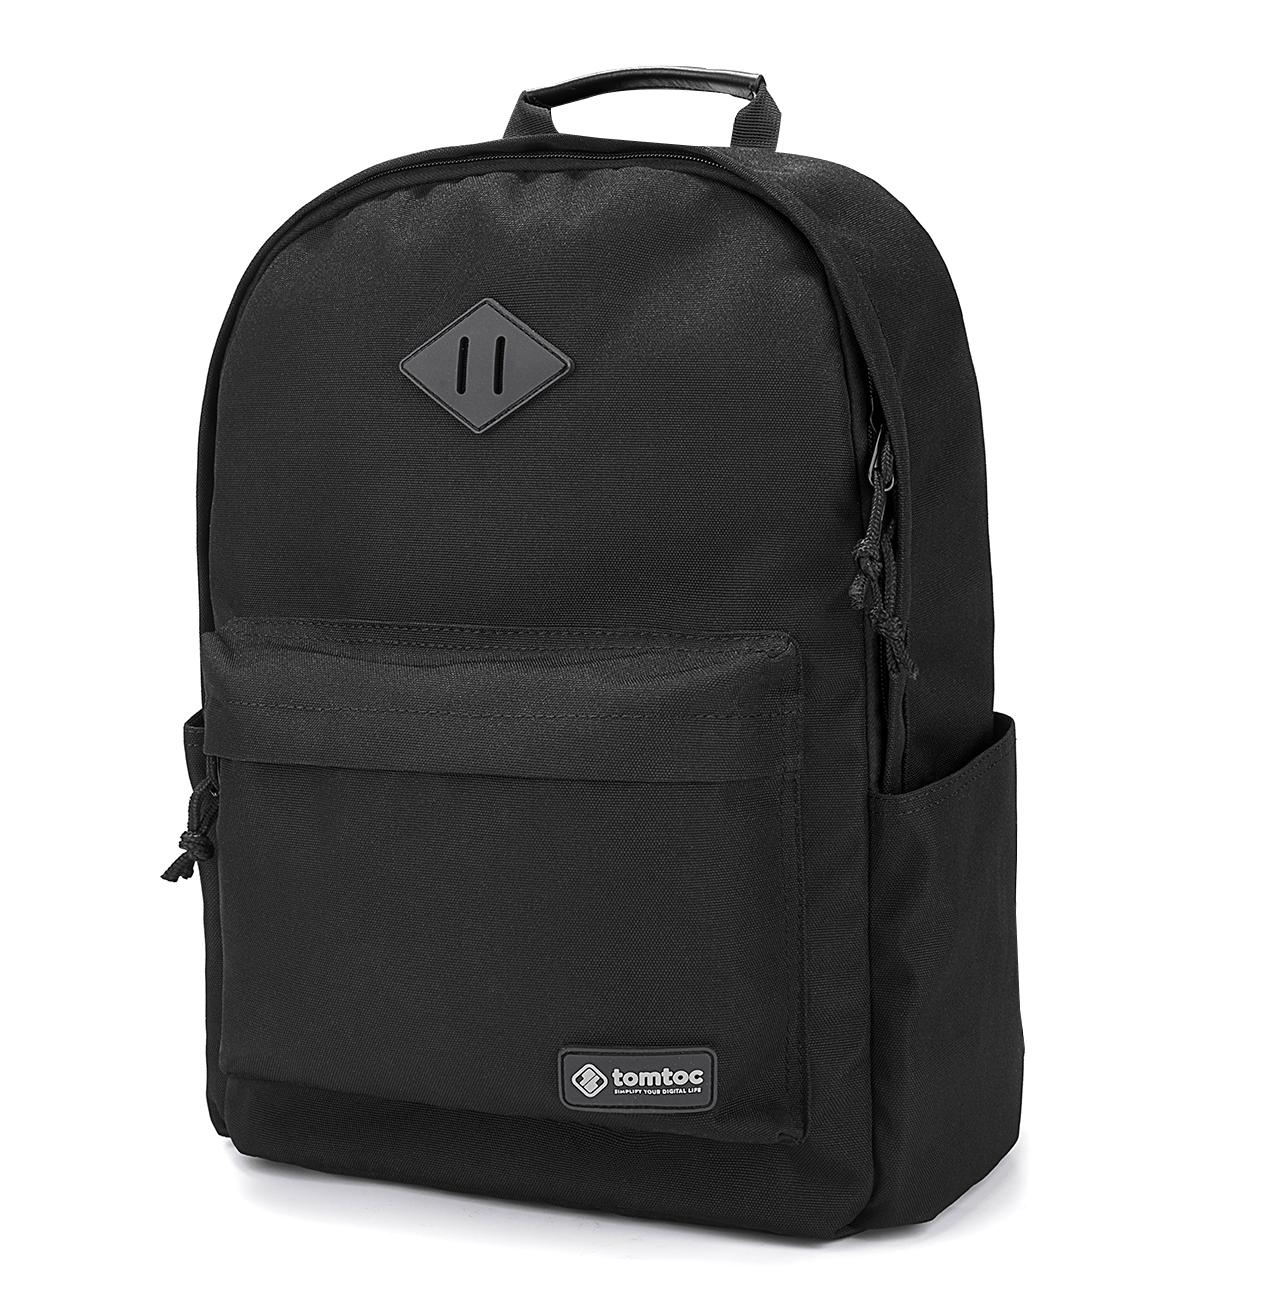 Tomtoc A71 15.6 Inch College Backpack,15.6 Inch Laptop Backpack Computer Bag Daypack Travel Bag School Bookbags Weekend Bag - Fits Up To 15.6 Inch Laptops By Tomtoc Offical Store.